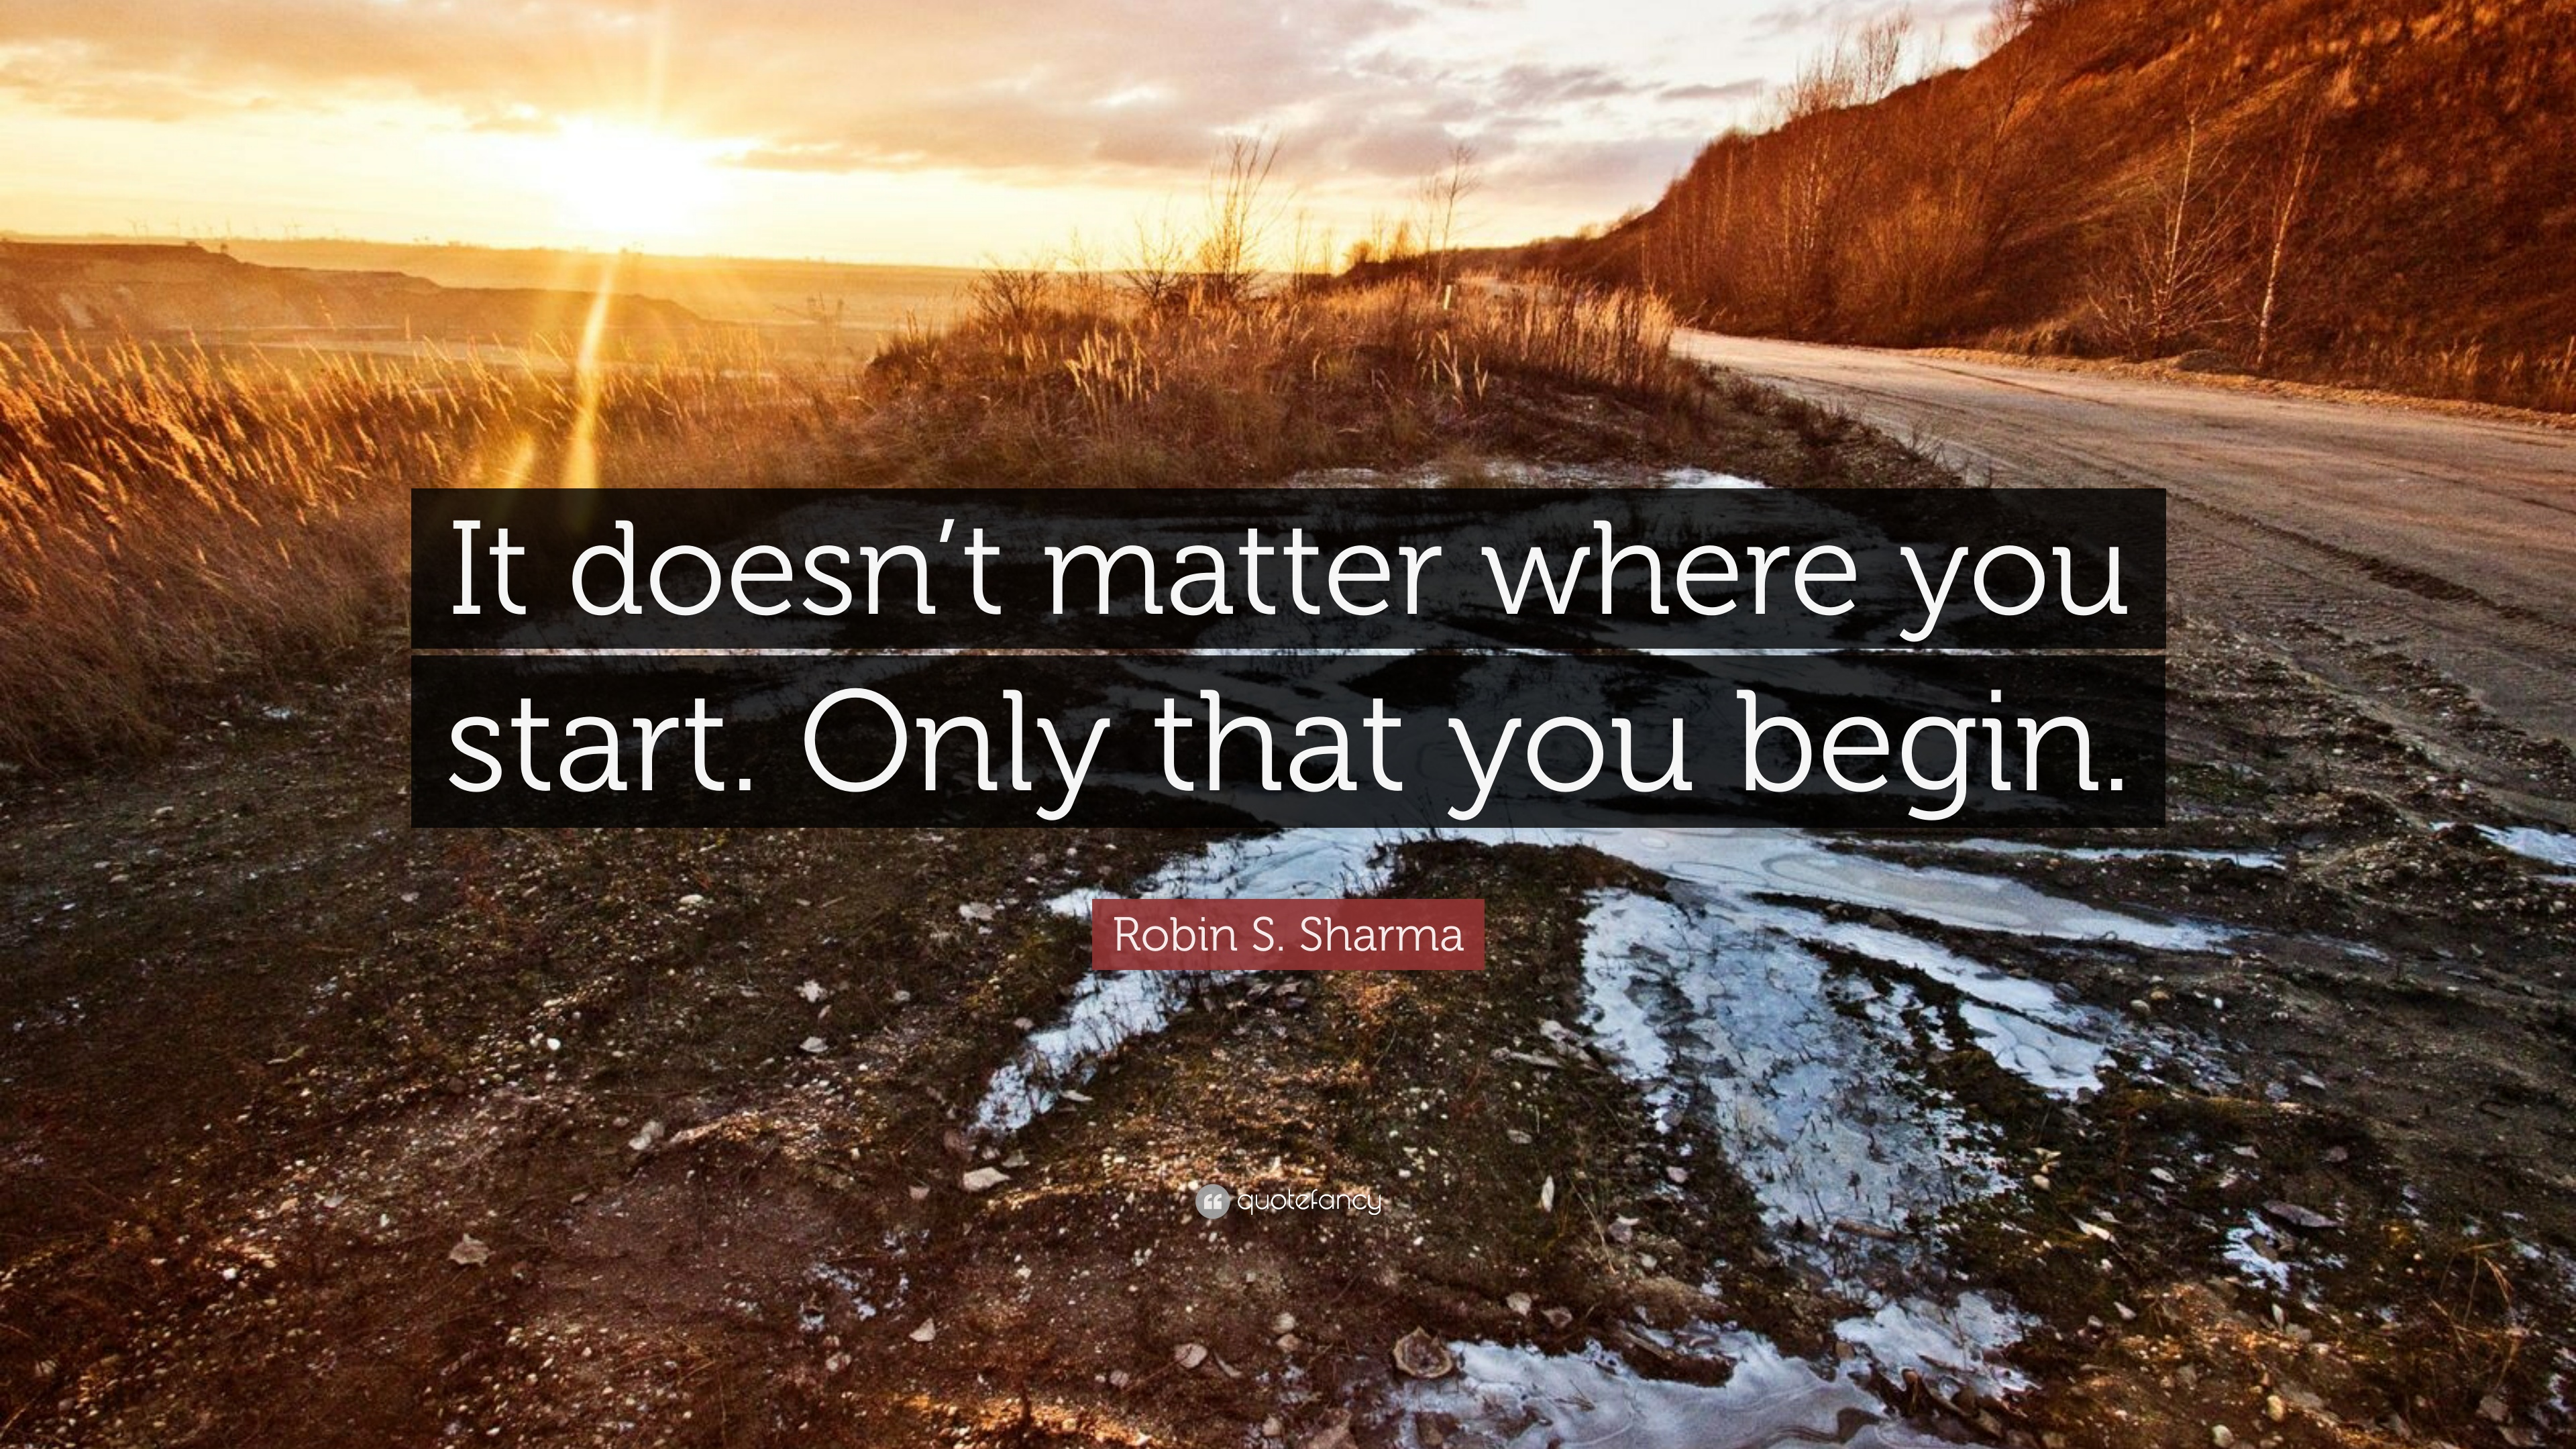 But Theyre Only 12 Why And How To Begin >> Robin S Sharma Quote It Doesn T Matter Where You Start Only That